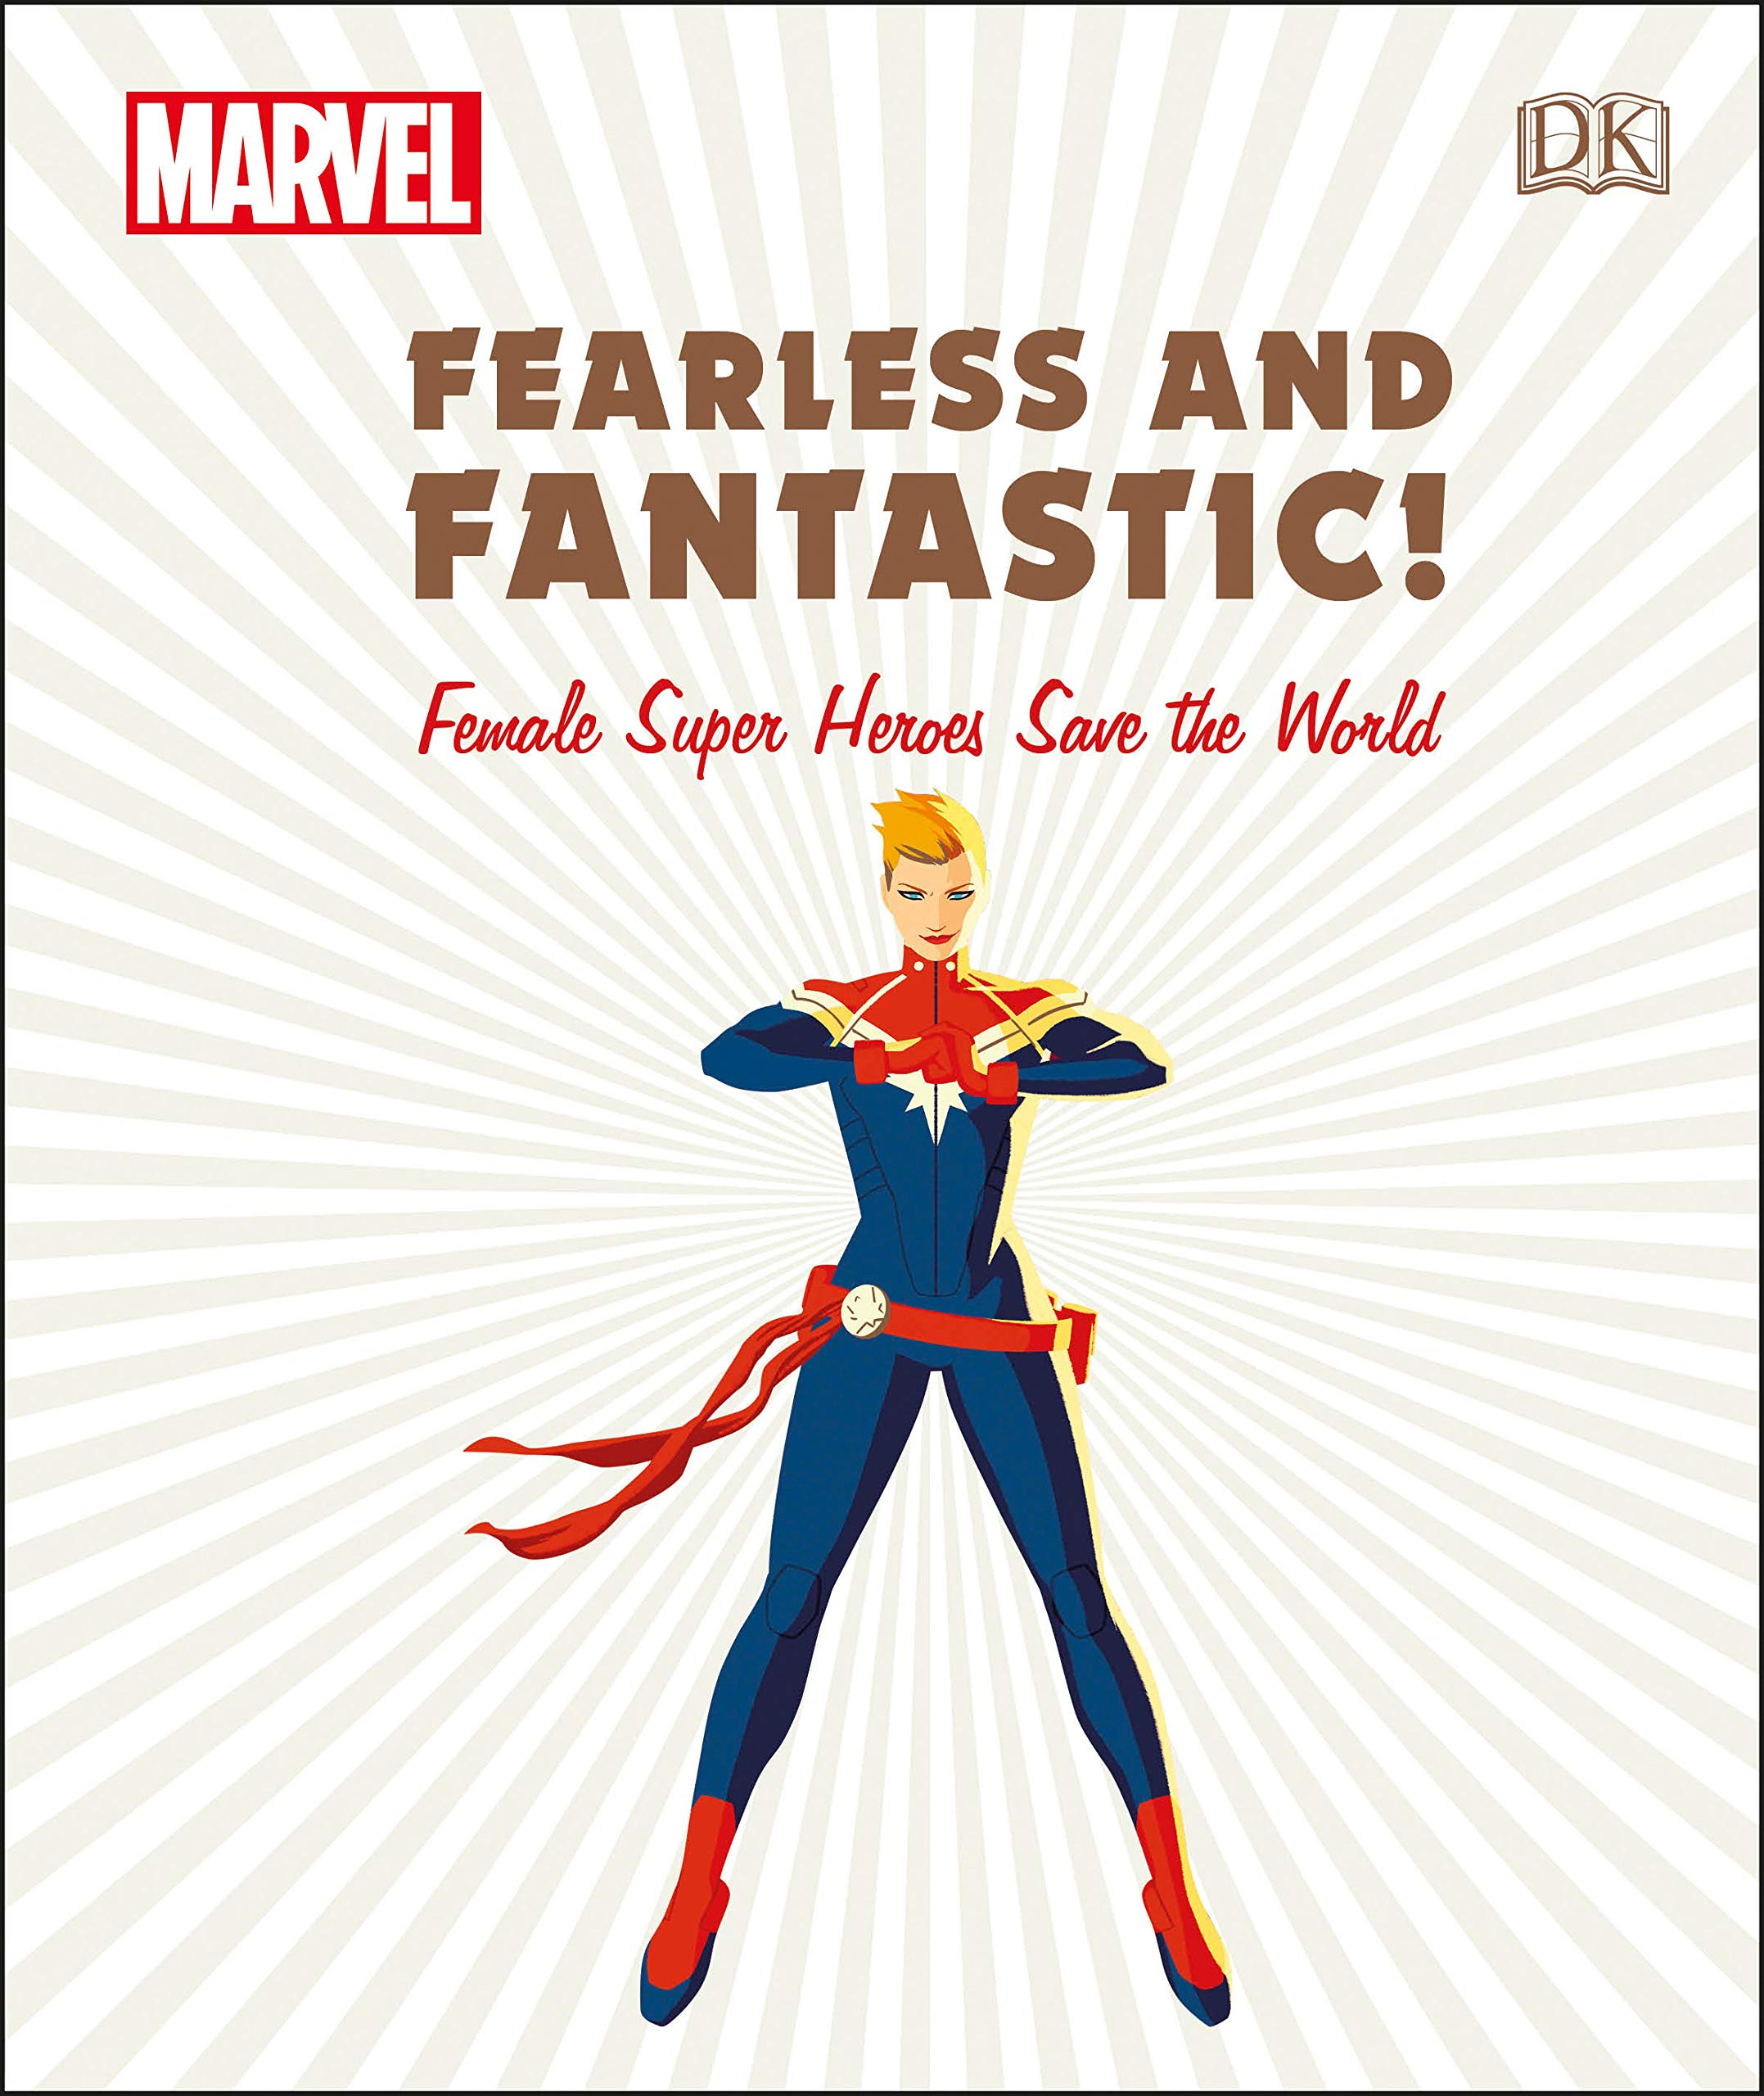 8adb2fbe3a35 Marvel Fearless and Fantastic! Female Super Heroes Save the World Hardcover  – December 18